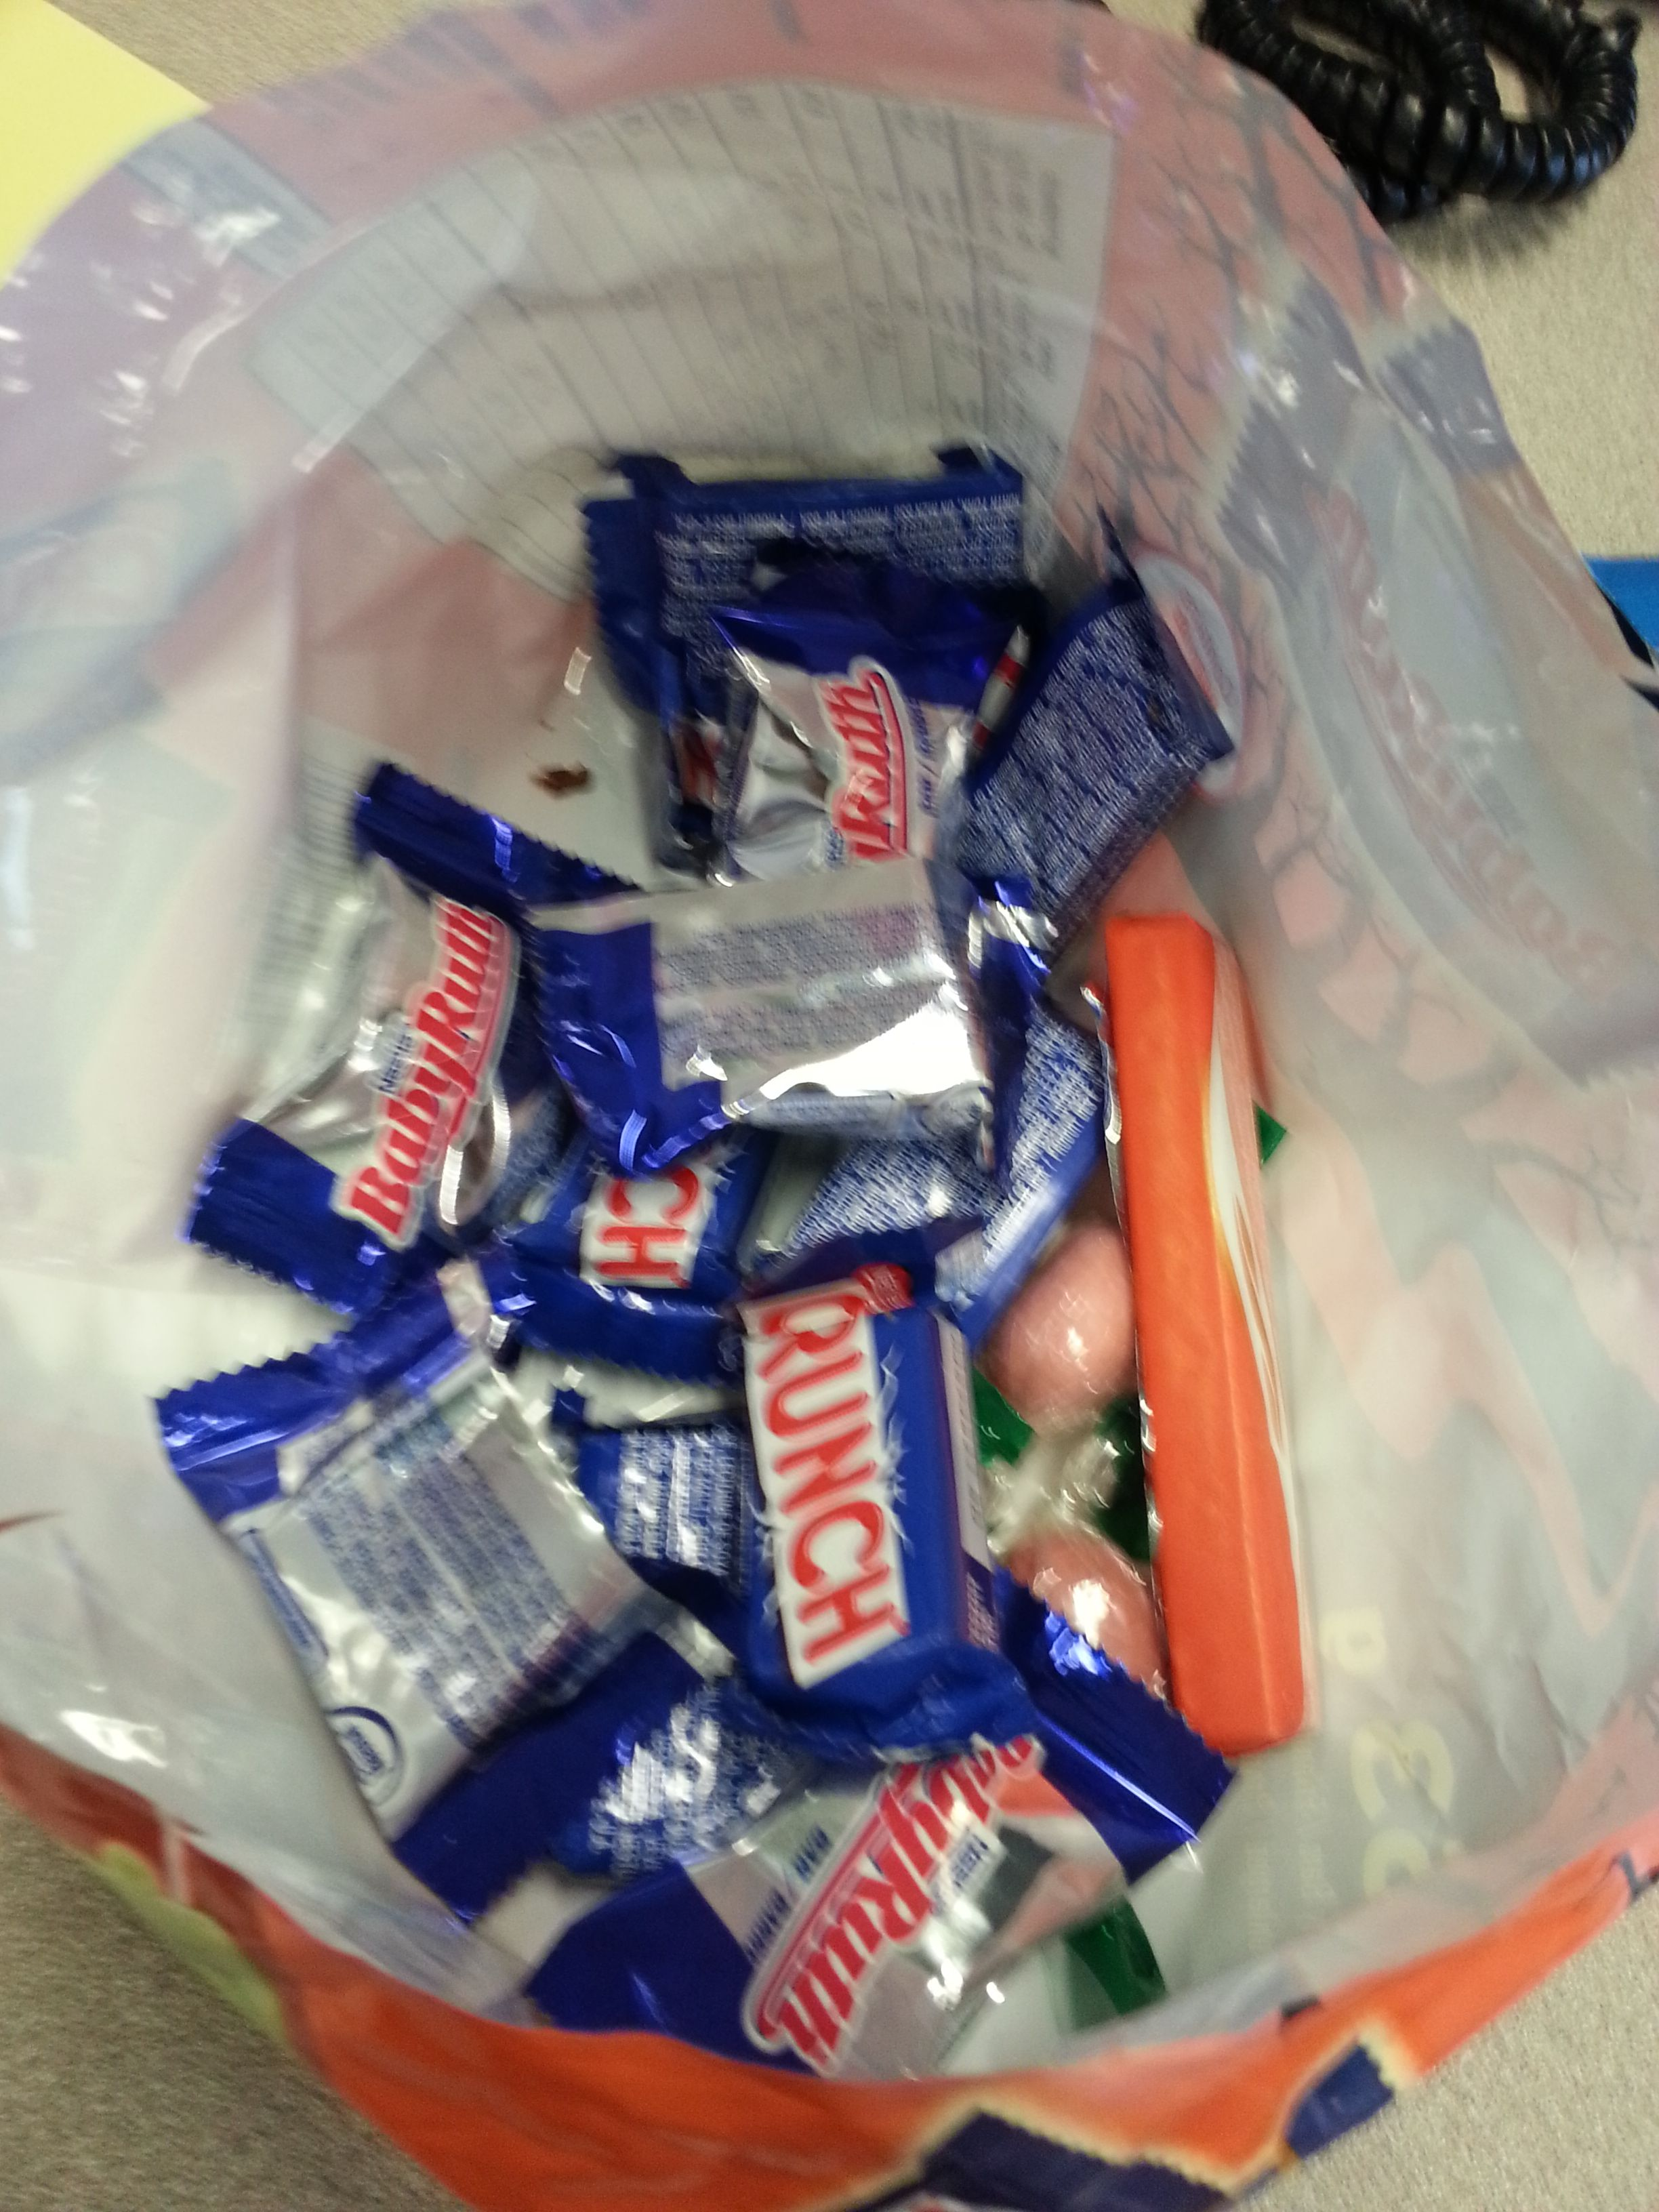 2014-11-05: Halloween Candy - Freebie from Co-workers. Never hurts to ask.